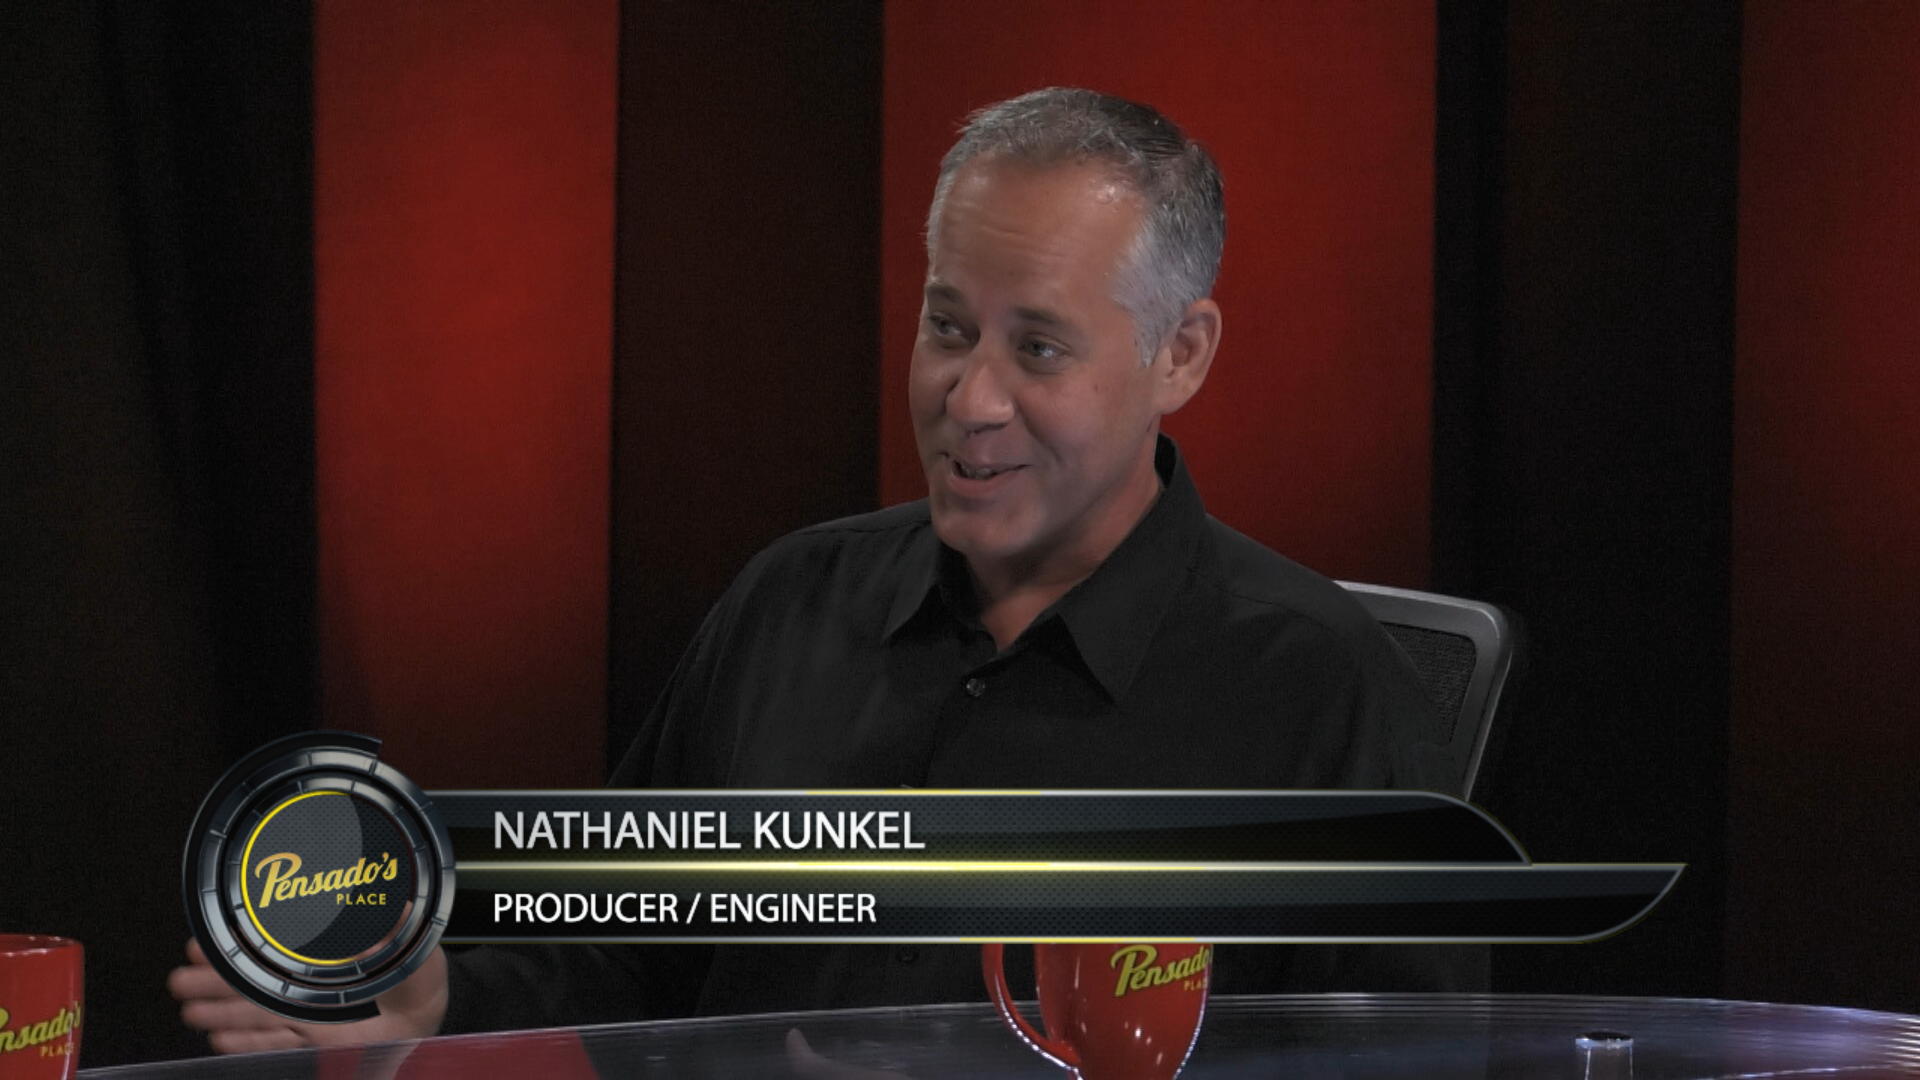 Grammy Award Winning Producer/Engineer Nathaniel Kunkel